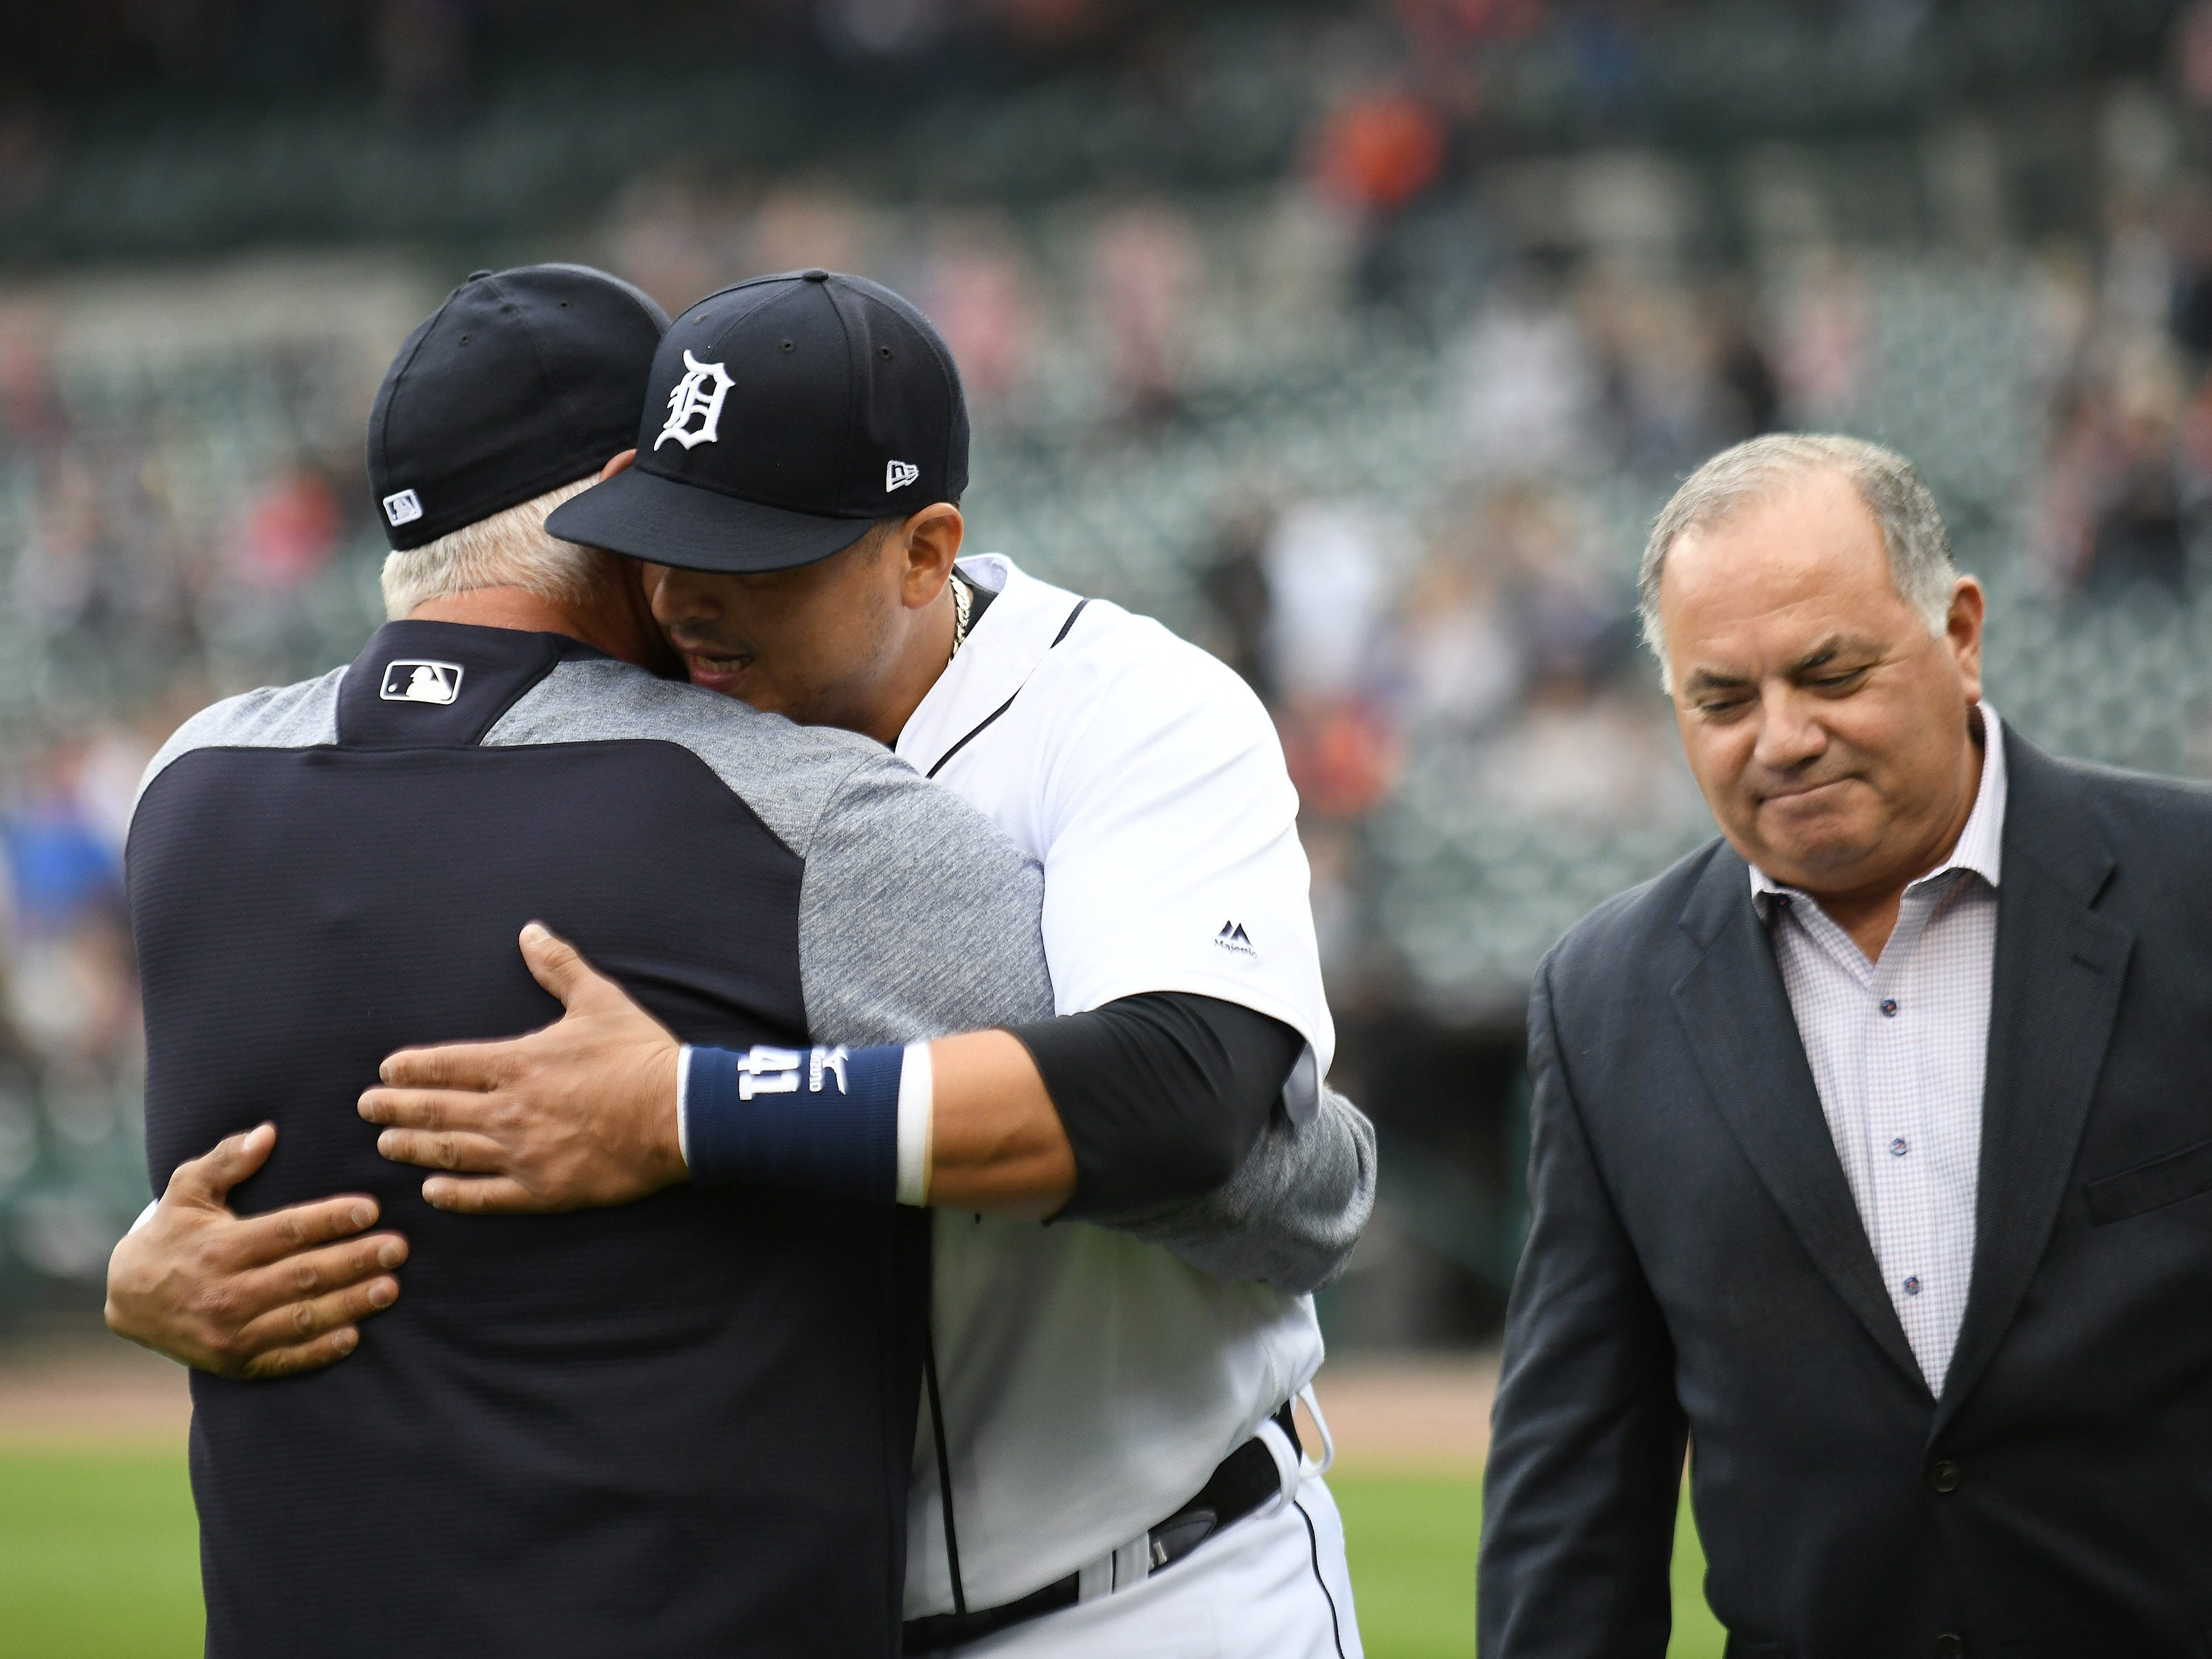 After hugging Al Avila, right, Victor Martinez hugs manager Ron Gardenhire during the ceremony.